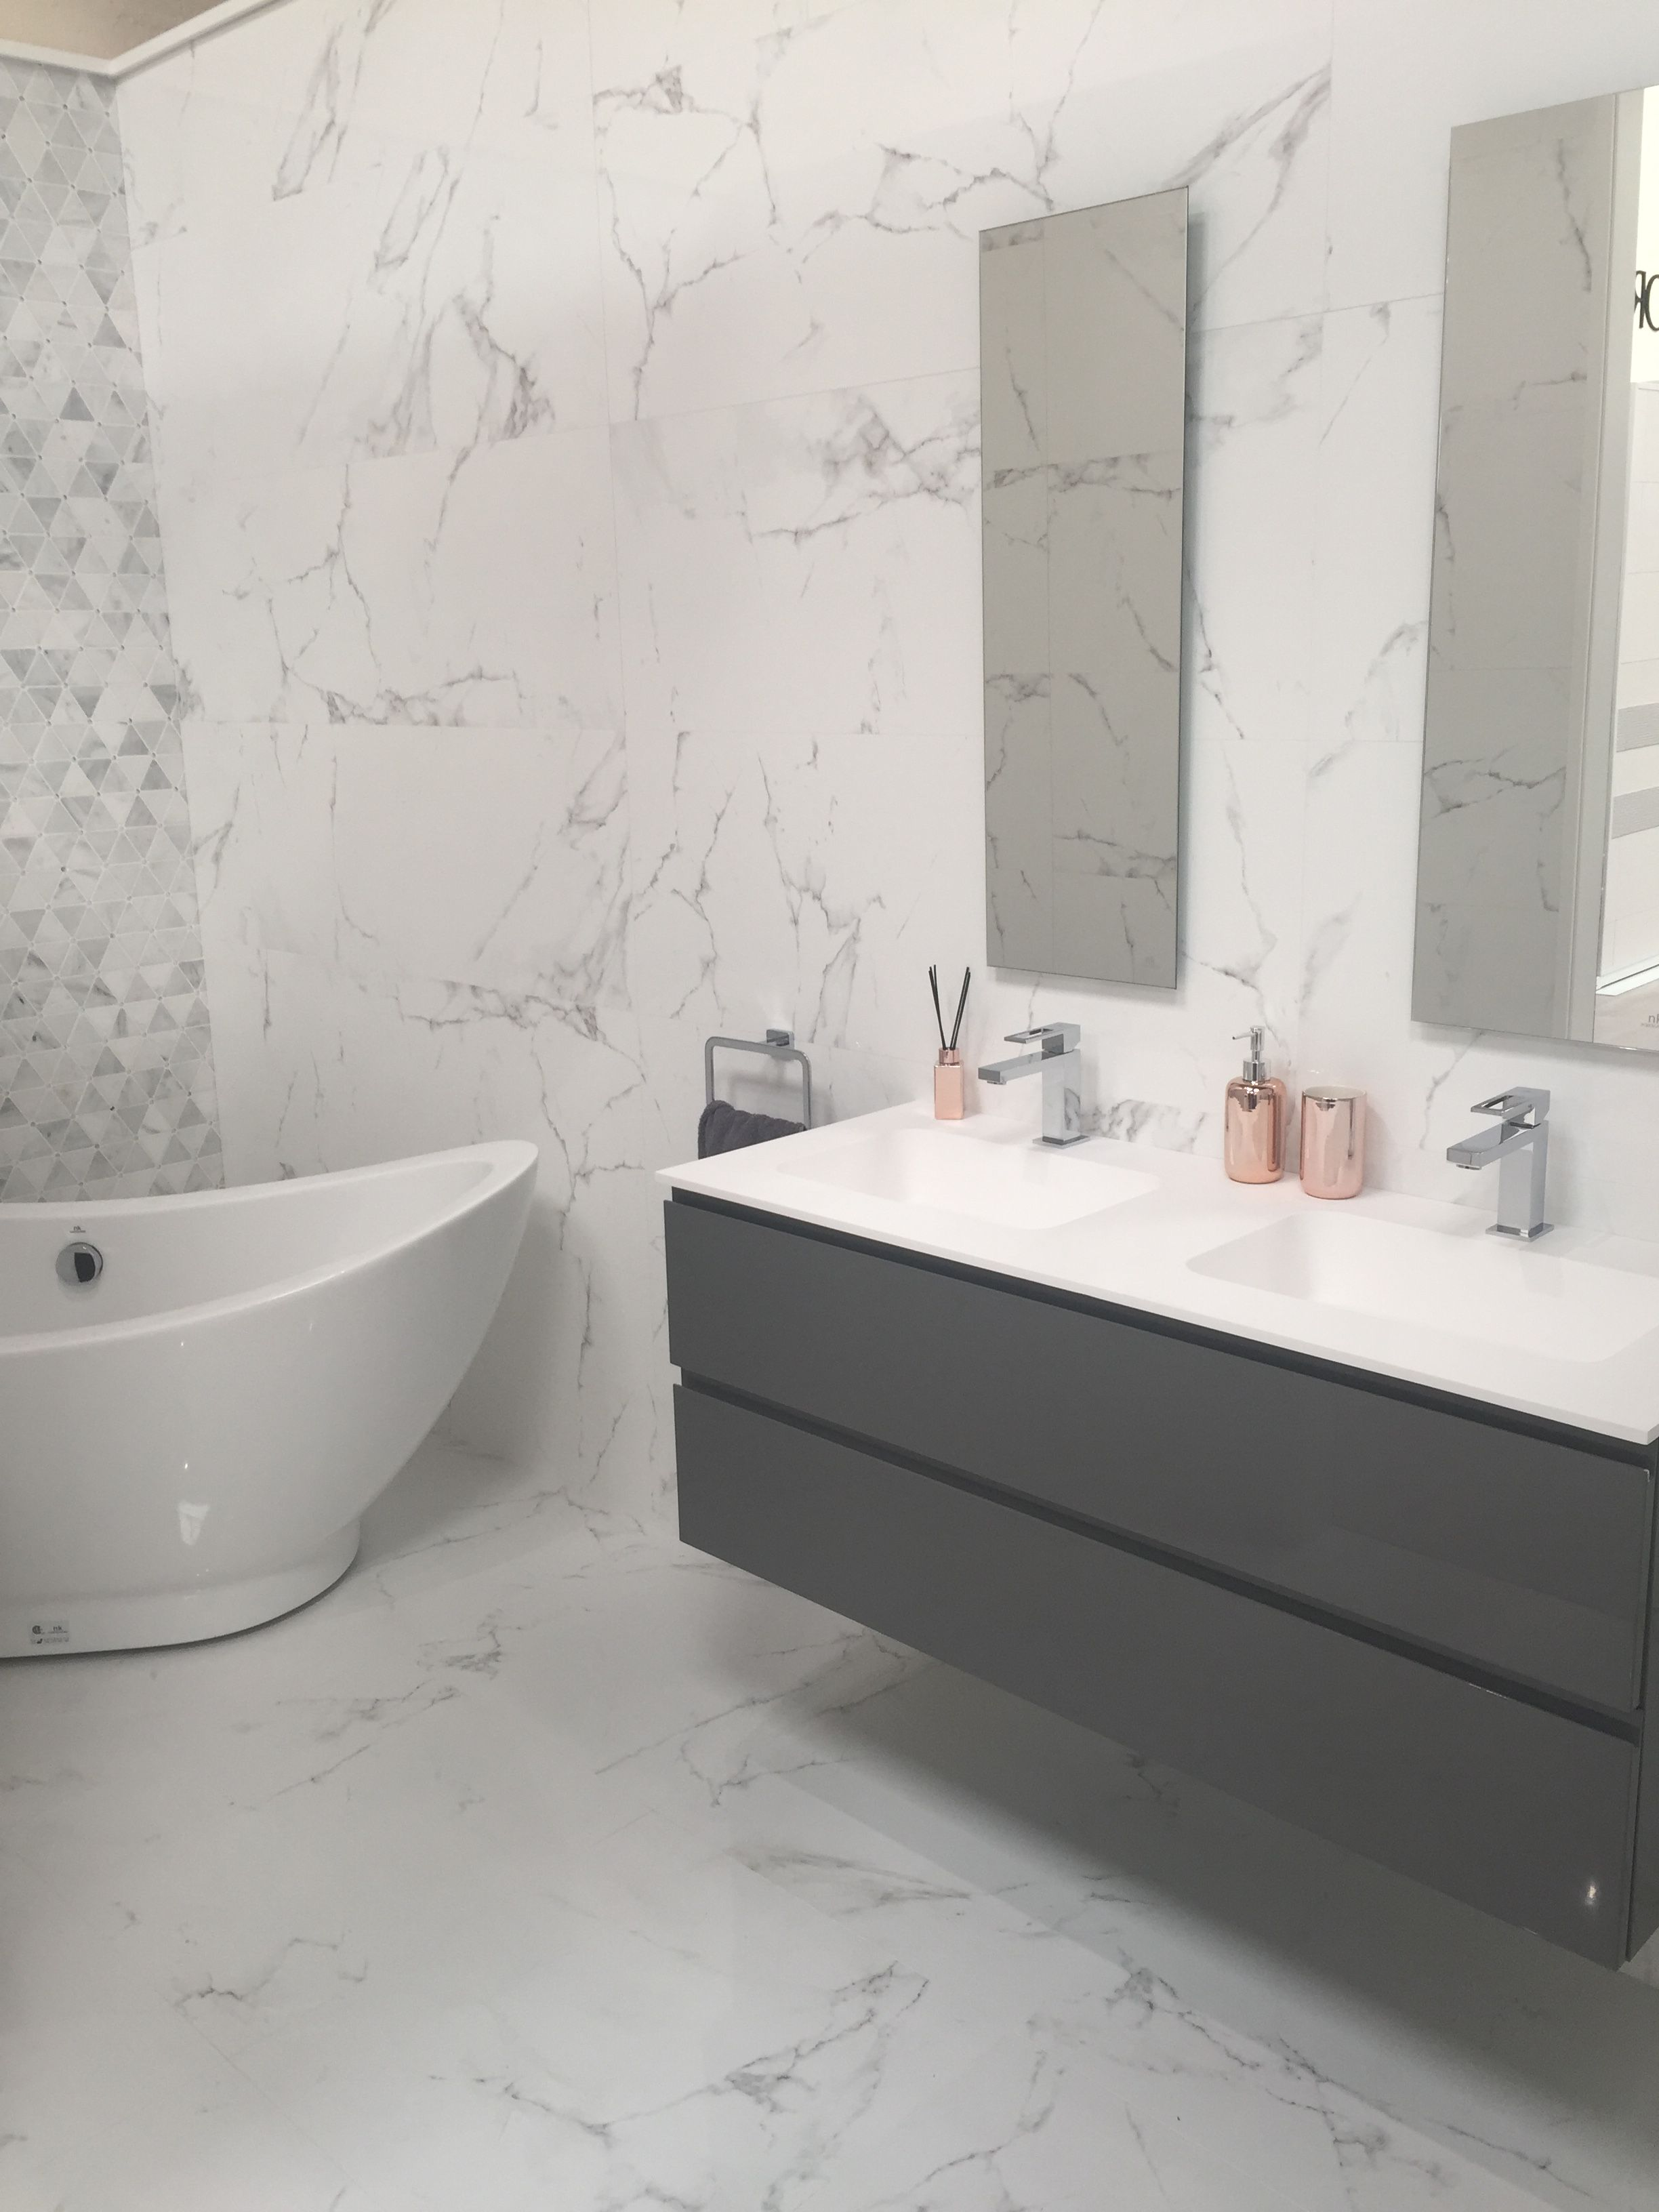 Our Favourite Bathroom Showroom Display Bright White Marble Wall